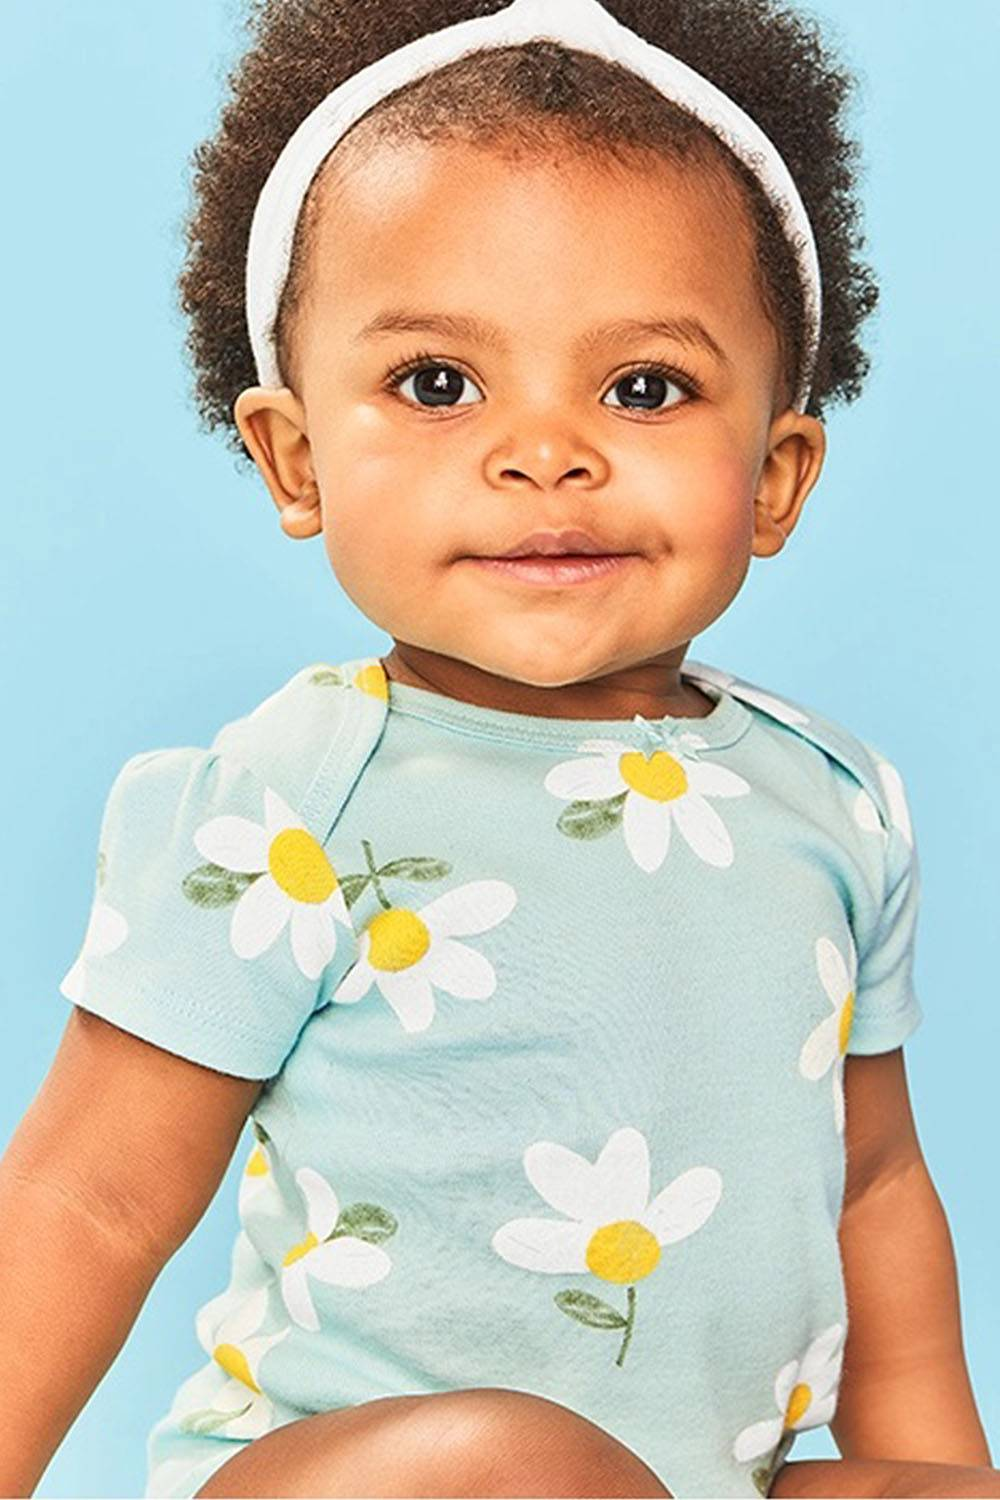 carters clothing brand based in georgia